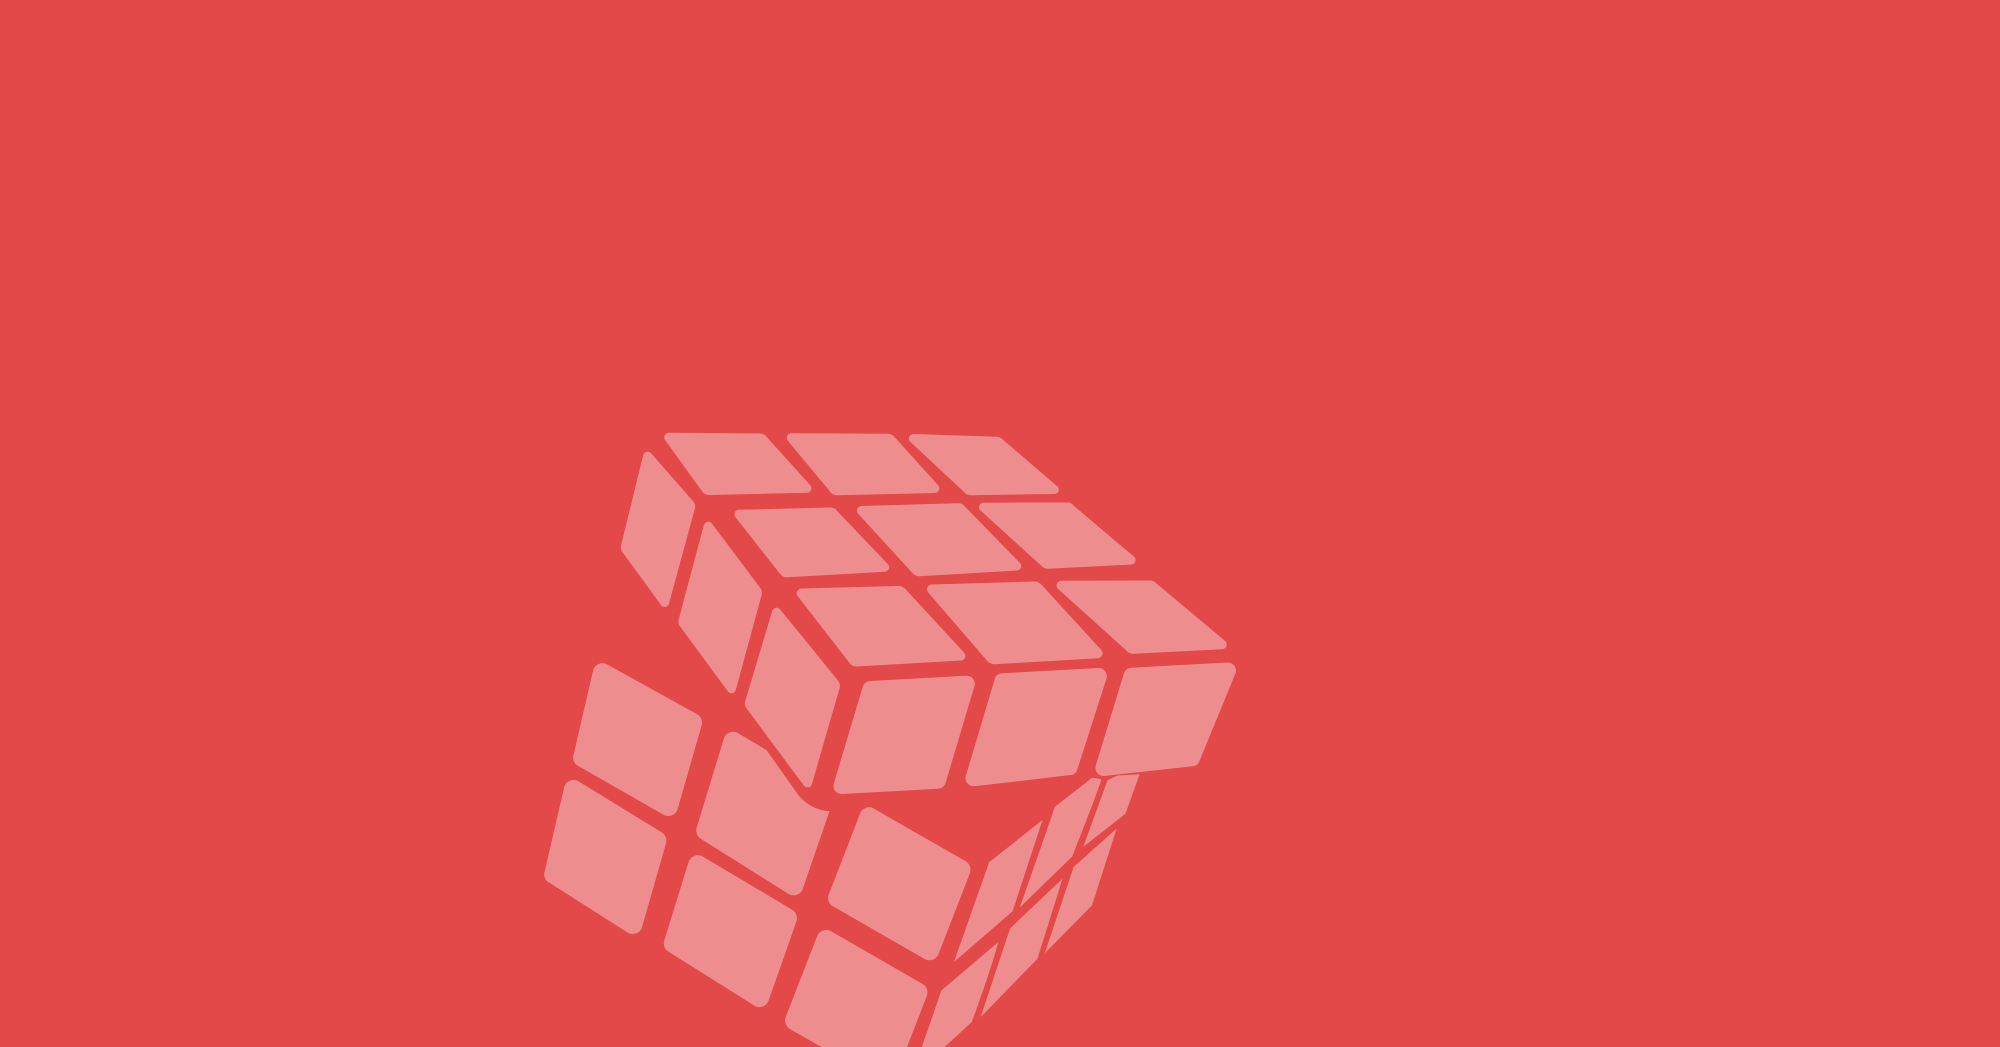 Pale red Rubik's cube with one layer turning over red background.